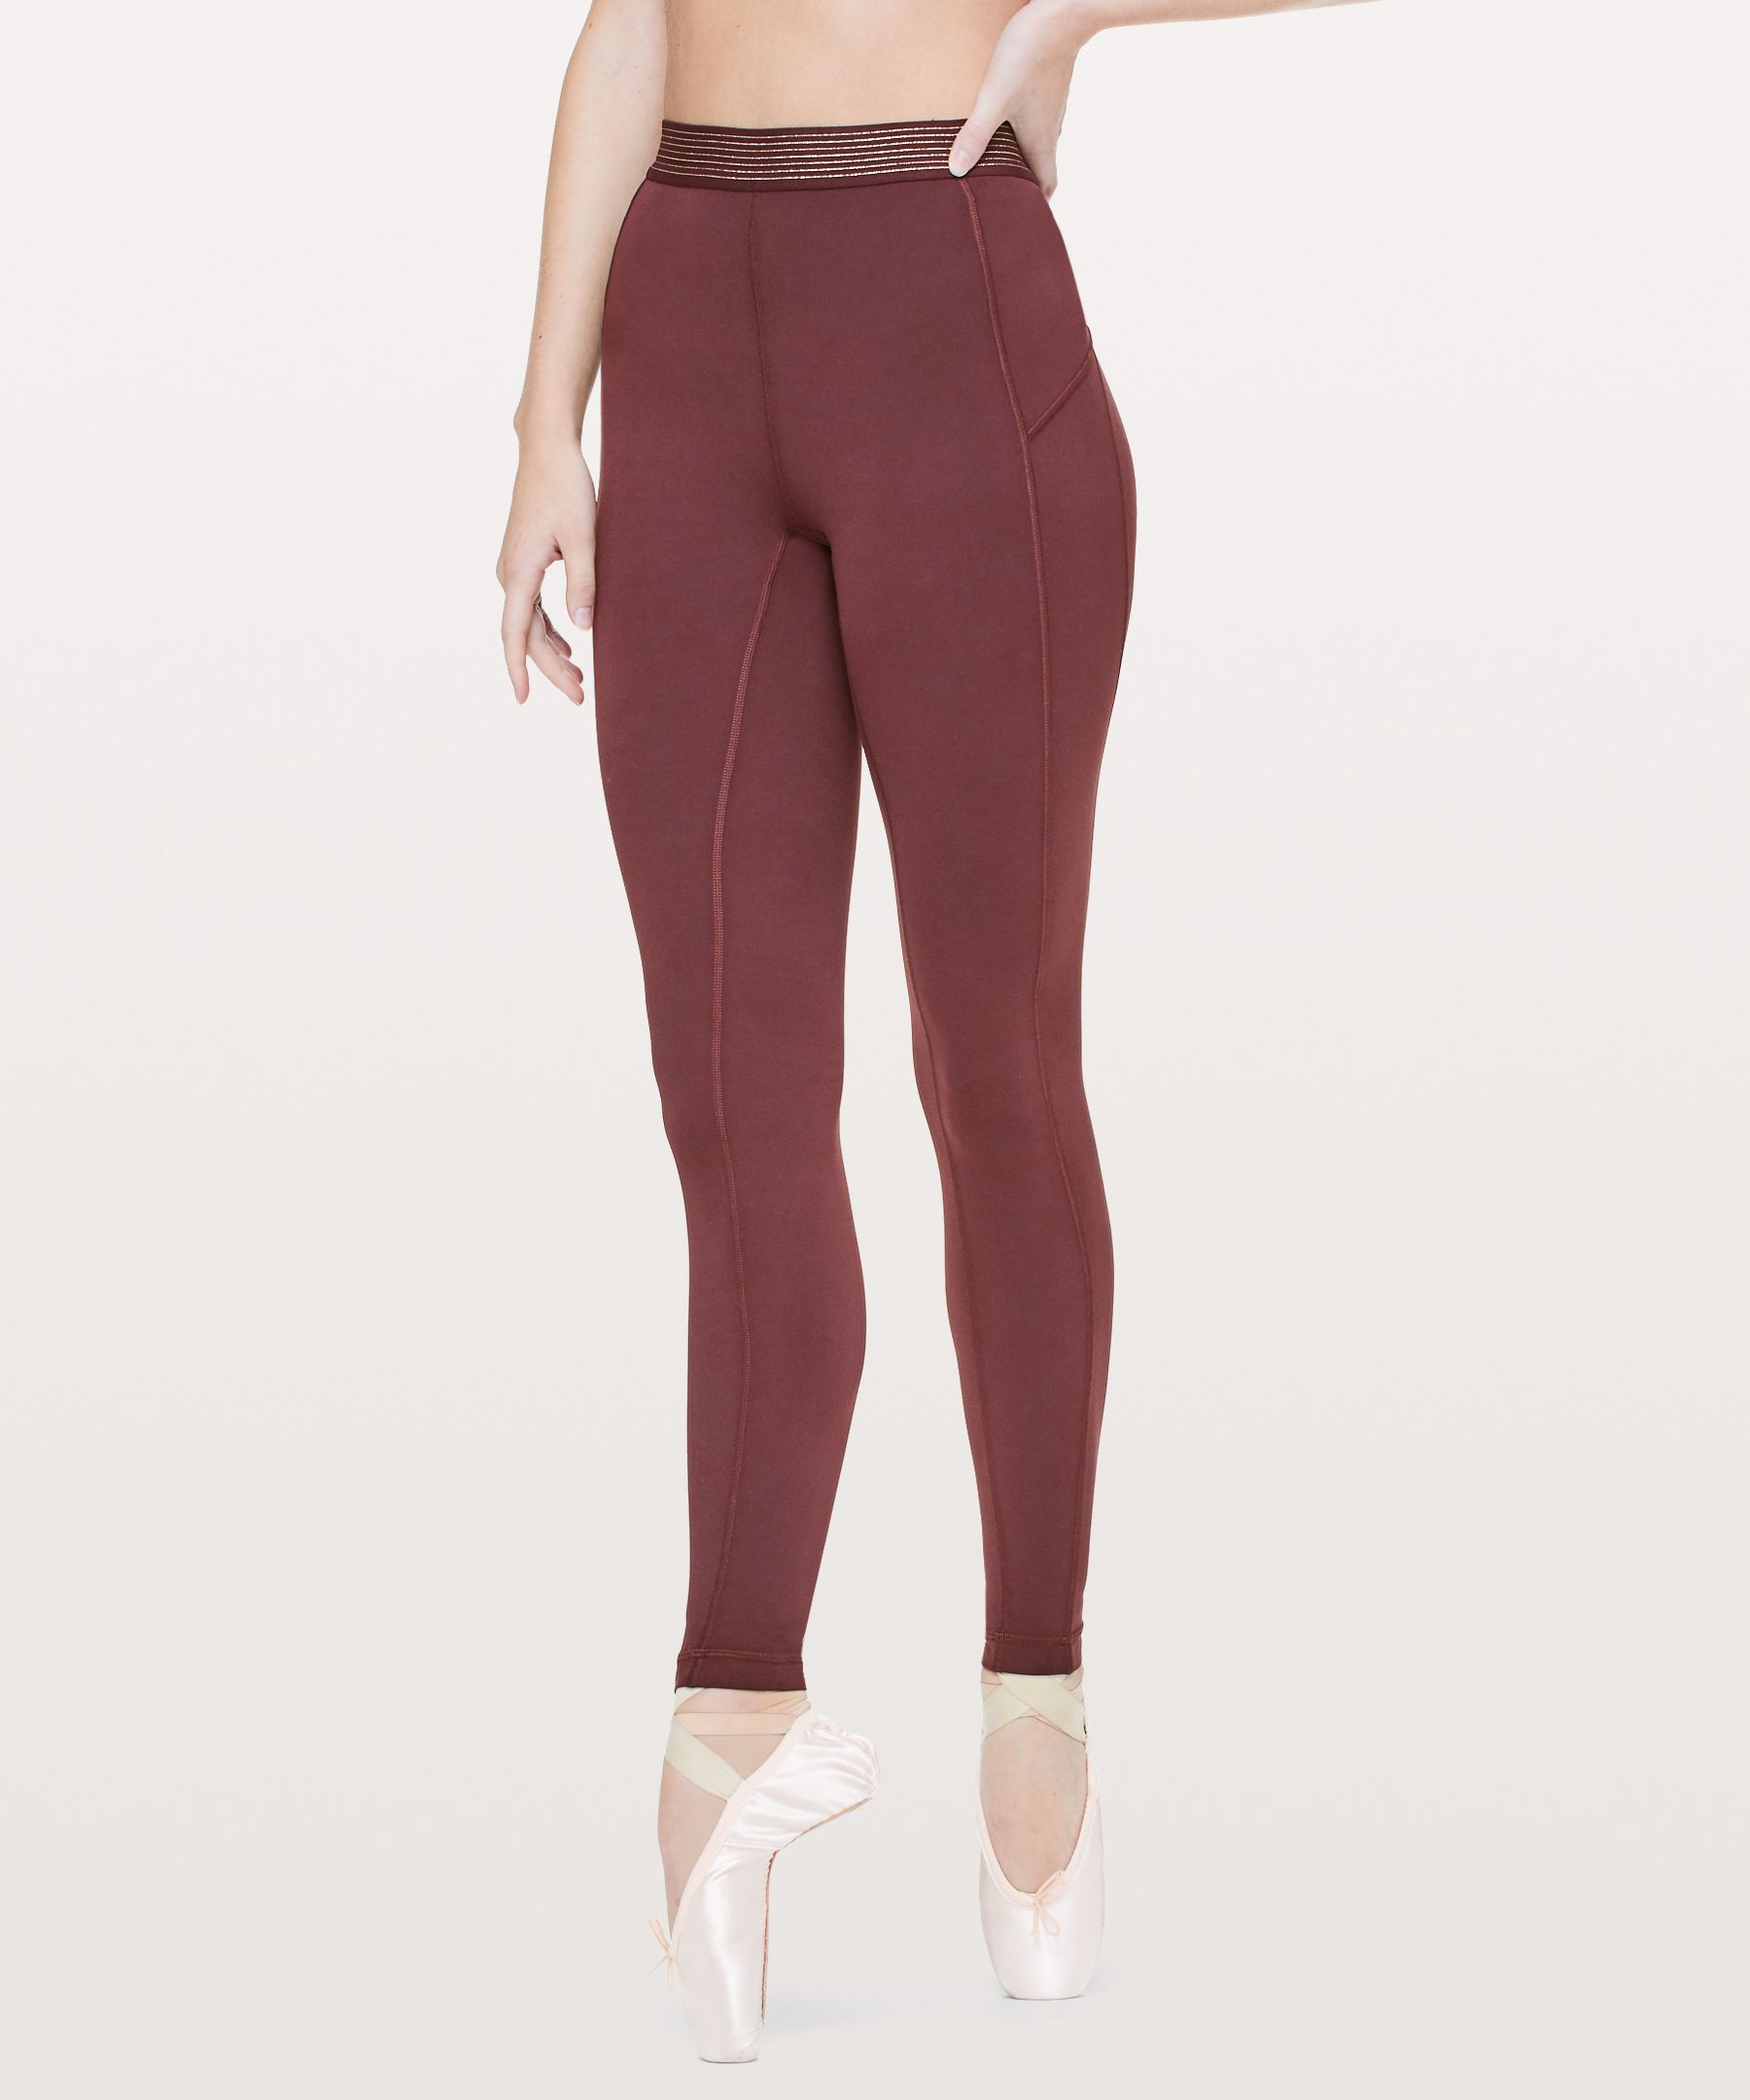 "Principal Dancer Golden Lining Tight 28"" by Lululemon"